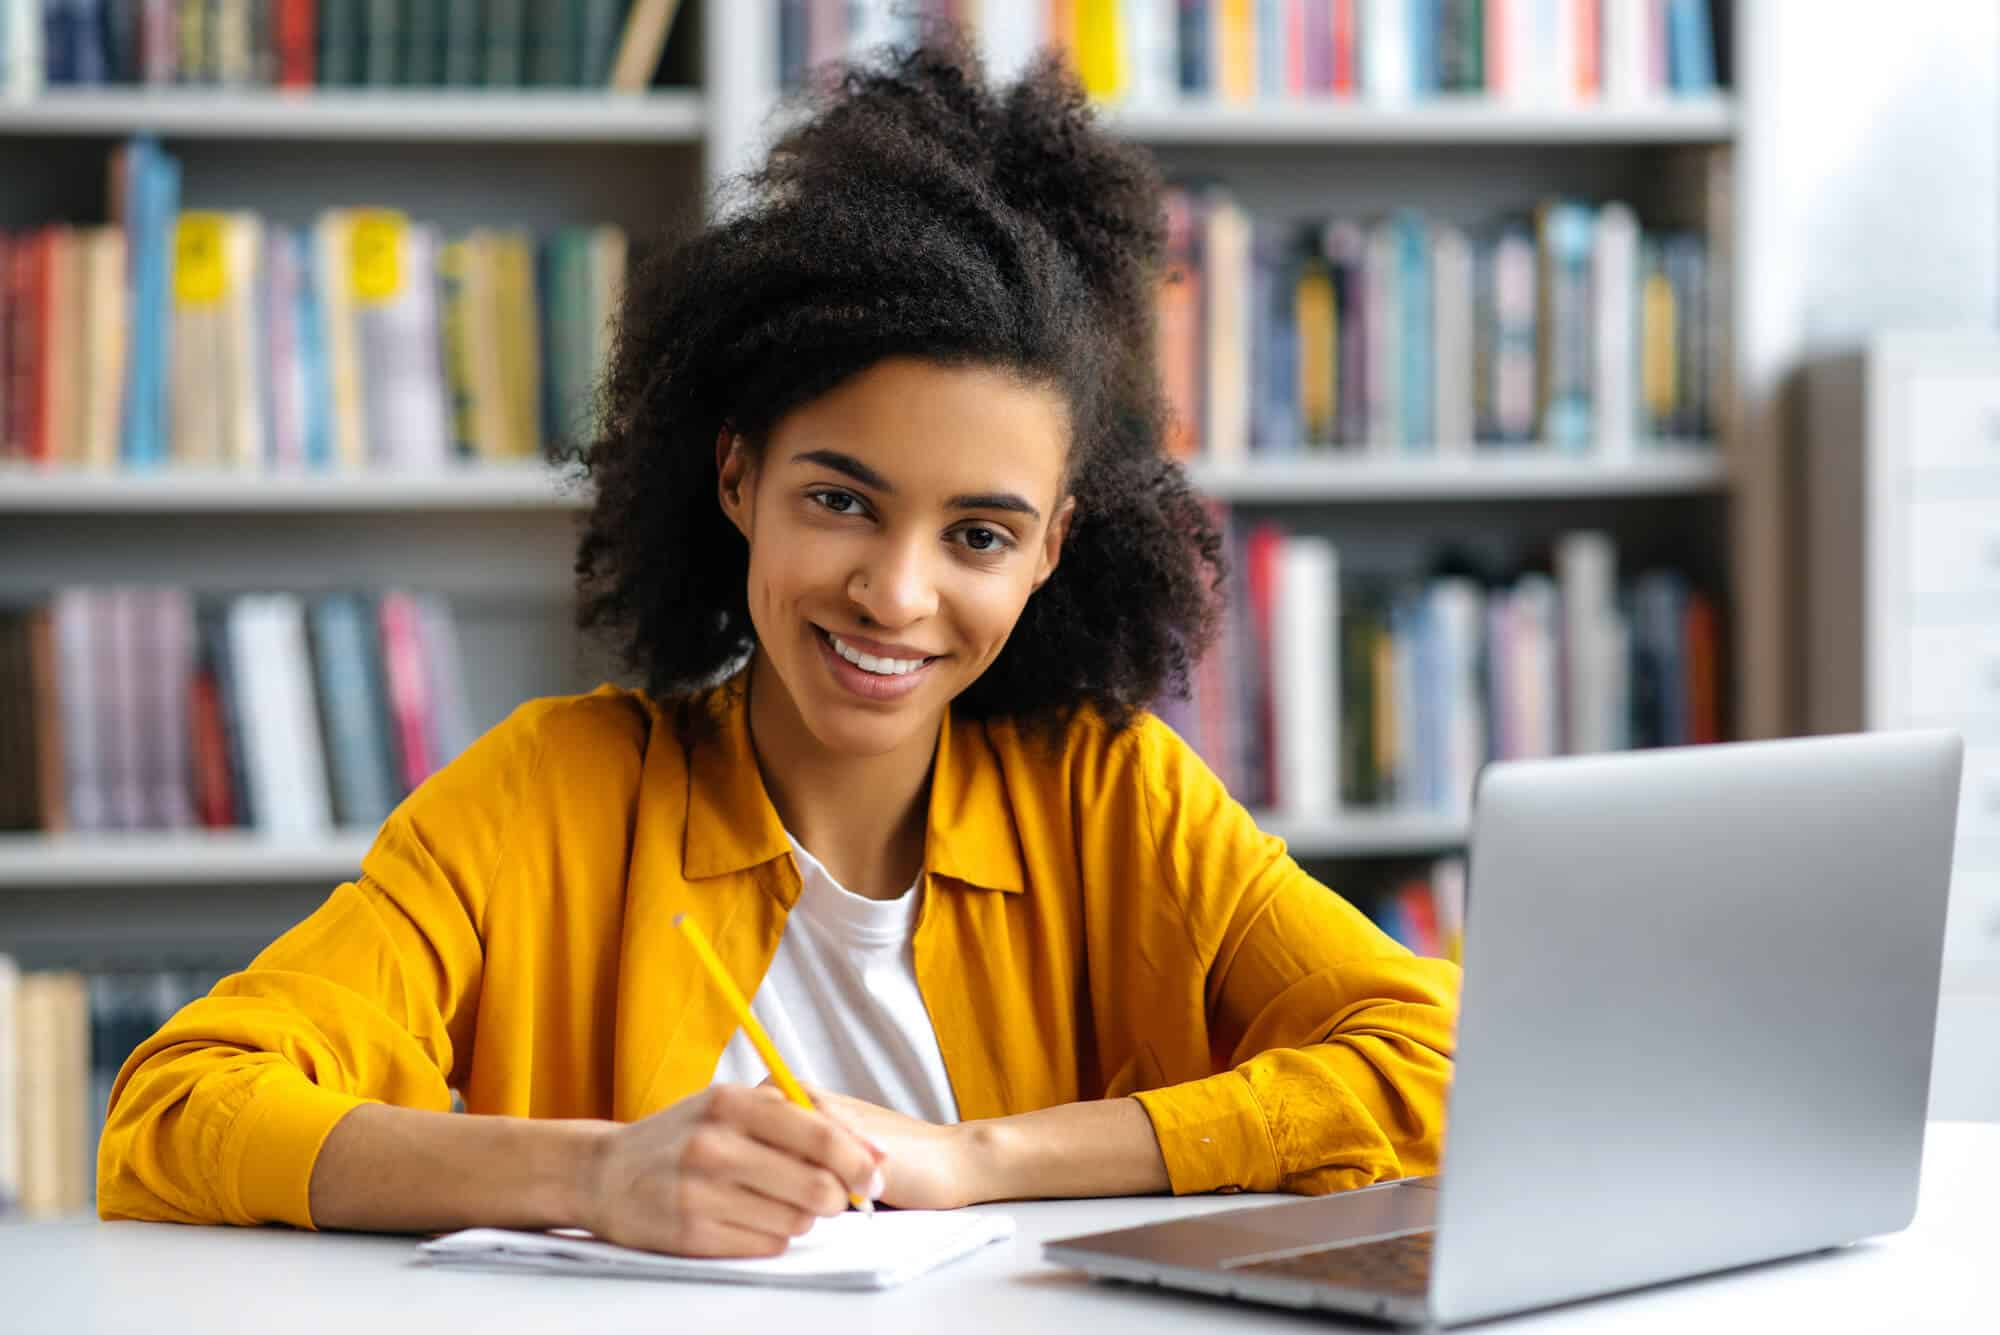 A girl of color sititng at a desk writing and smiling